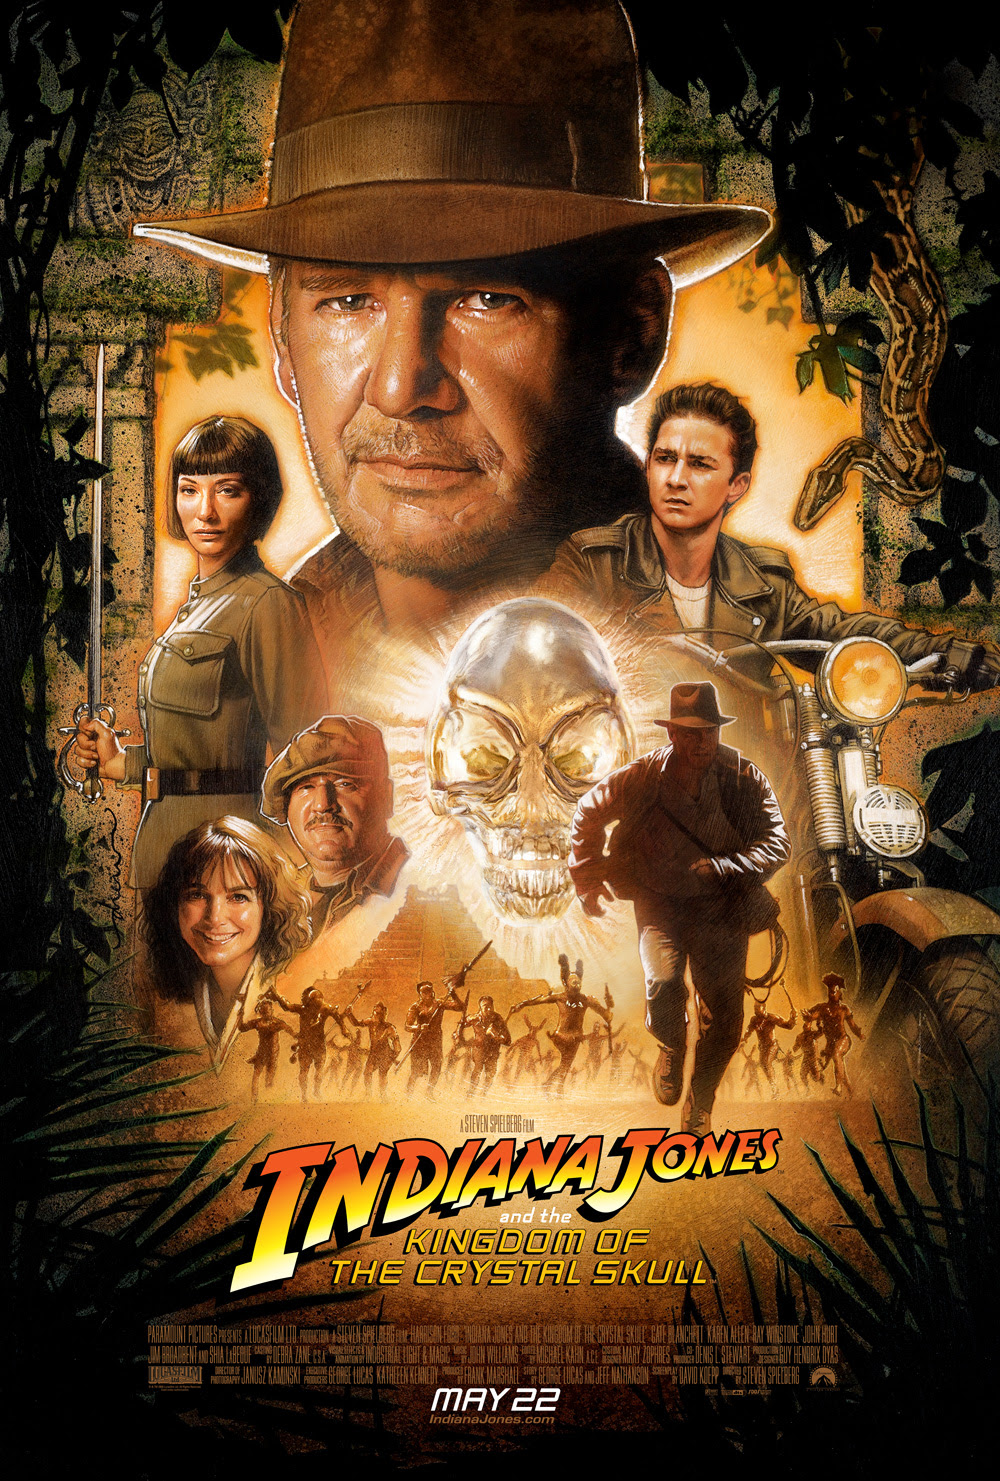 http://cinecido.files.wordpress.com/2008/05/indiana_jones_and_the_kingdom_of_the_crystal_skull_movie_poster_final_l1.jpg